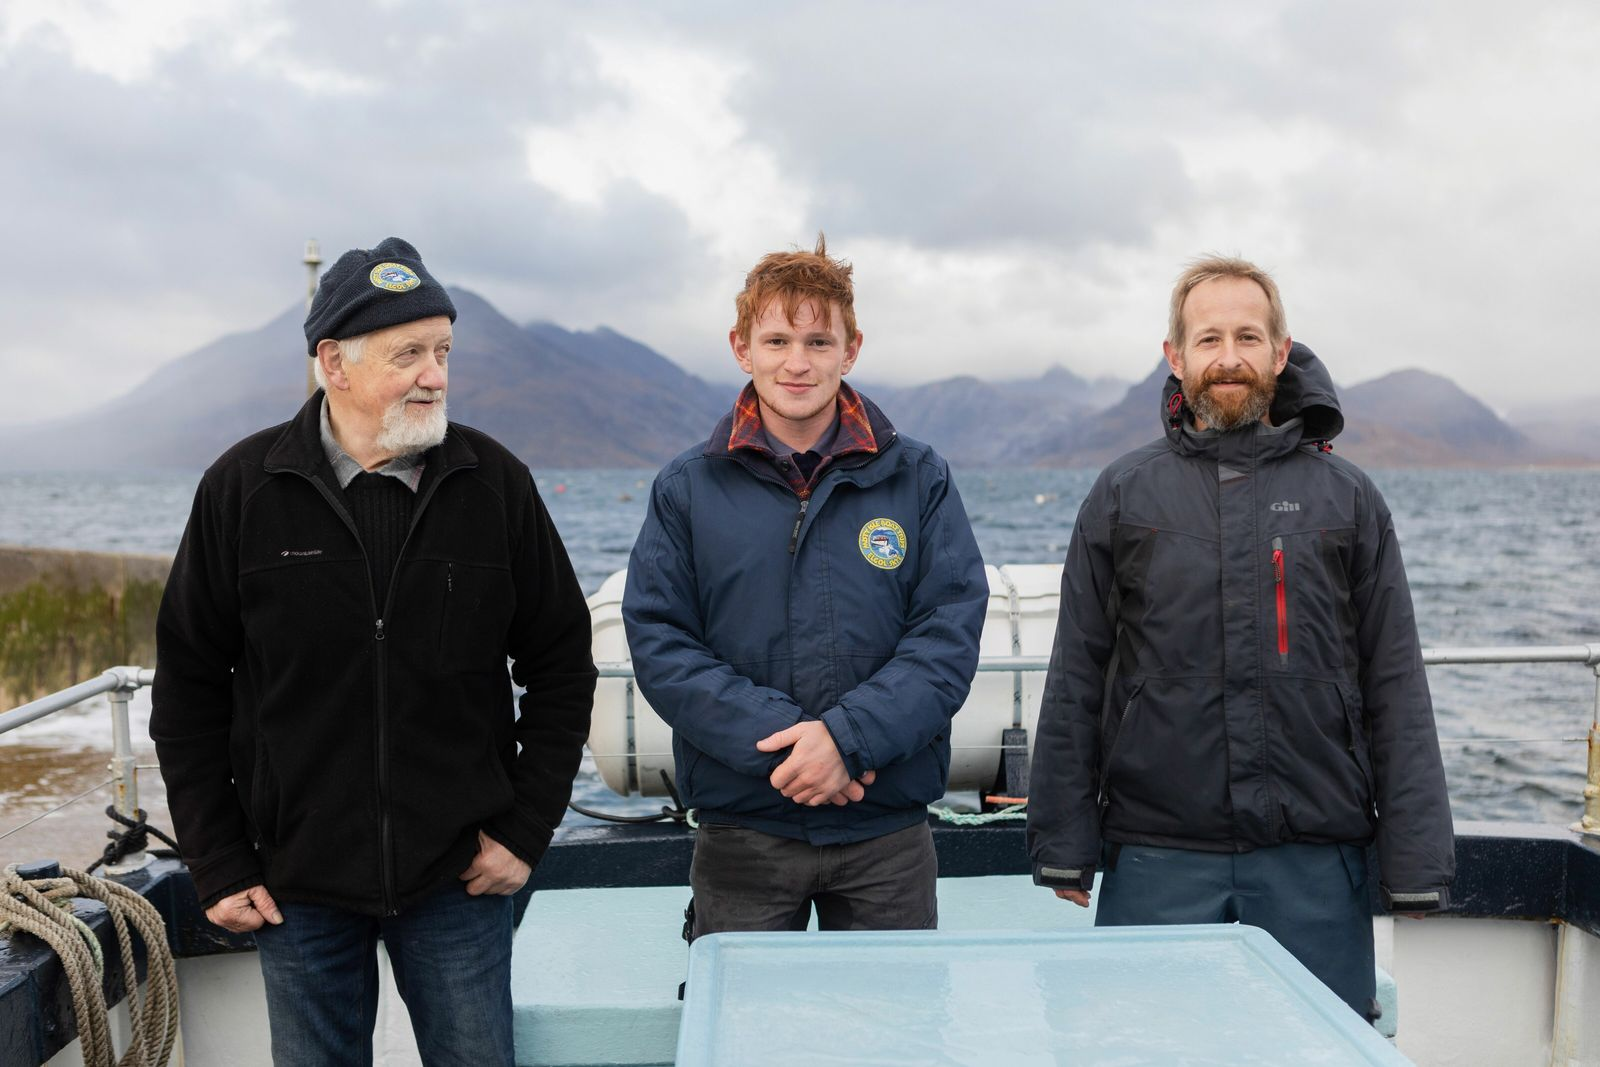 Seumas, Seumas and Sandy — three generations of the Mackinnon family. Their company, Misty Isle Boat Trips, ...